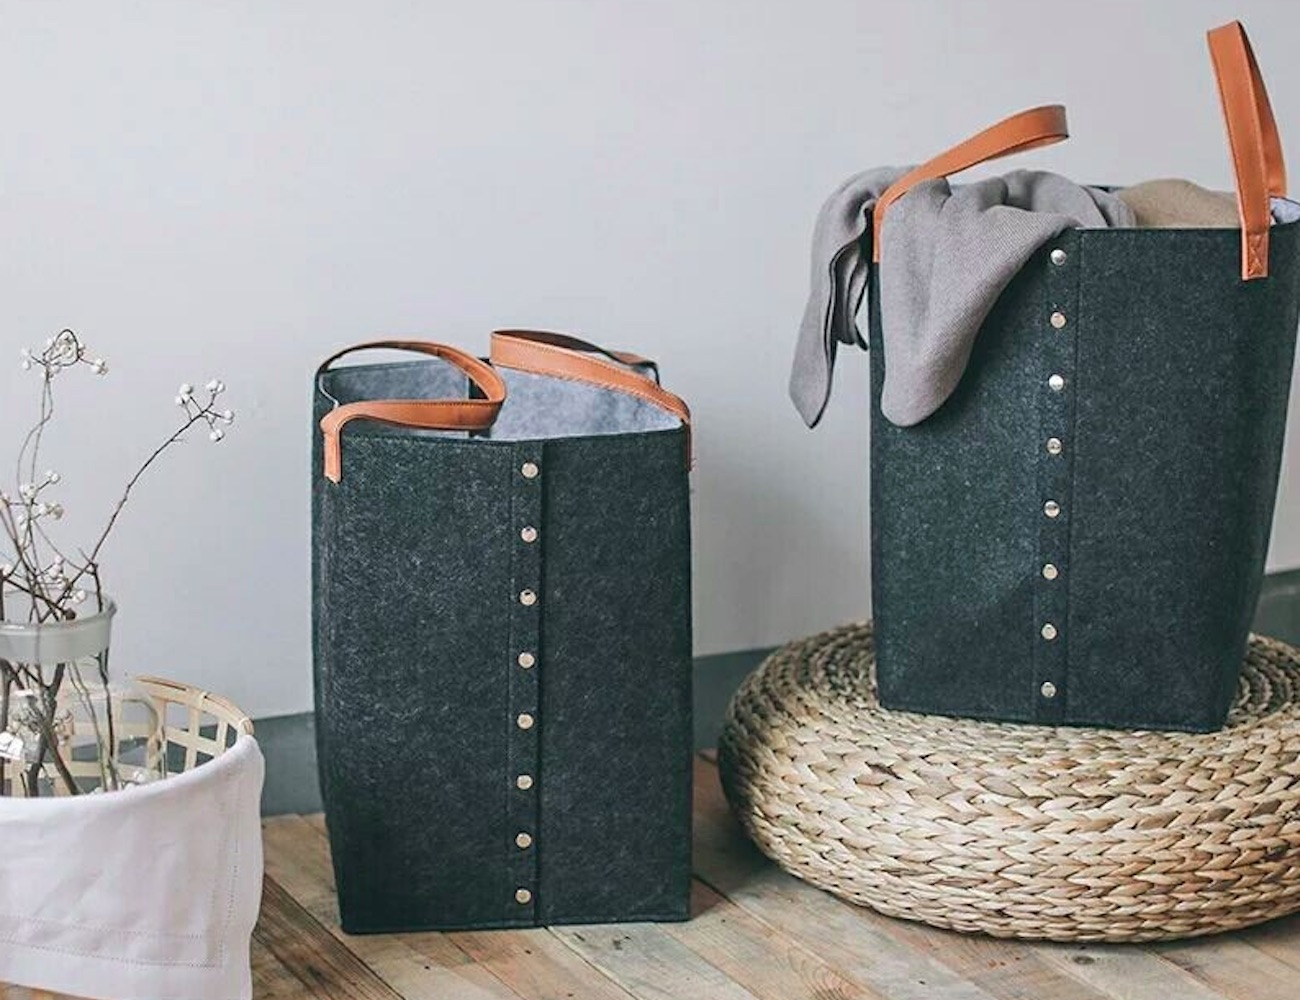 Felt Bucket-Style Laundry Basket is all about style